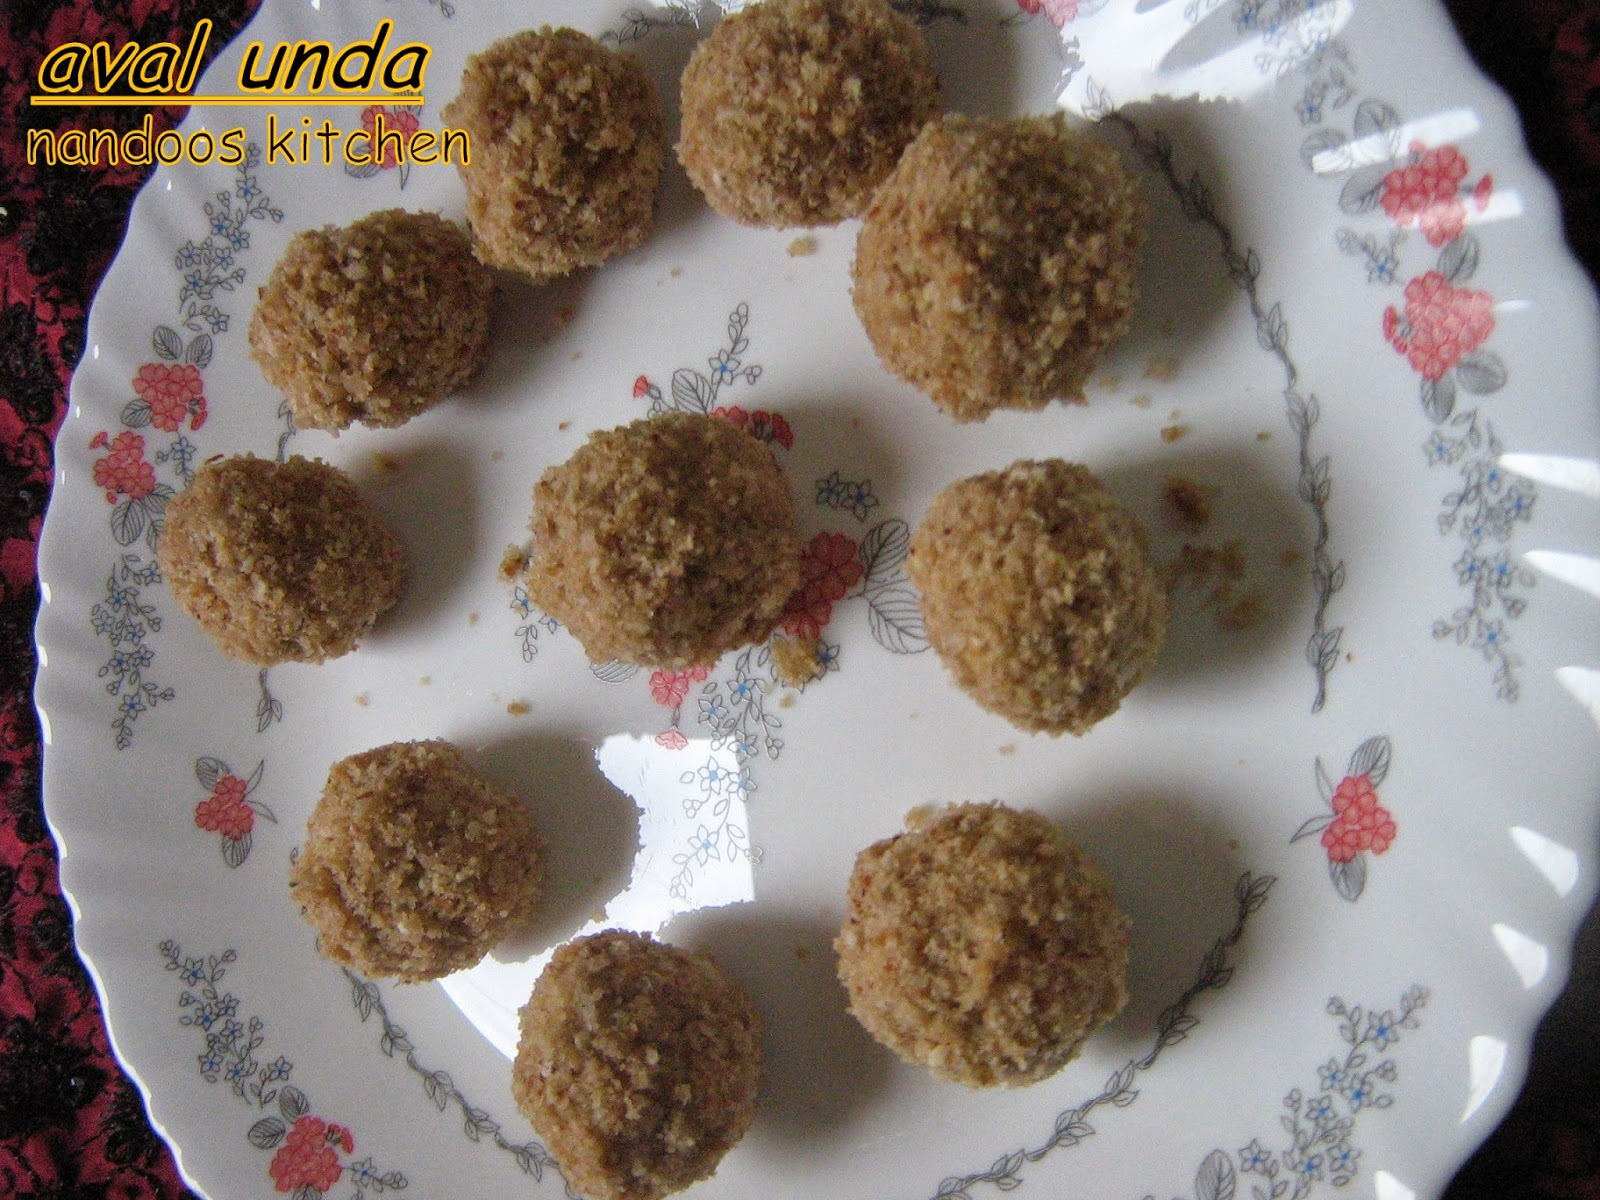 Aval unda / Aval ladoo / beaten rice balls